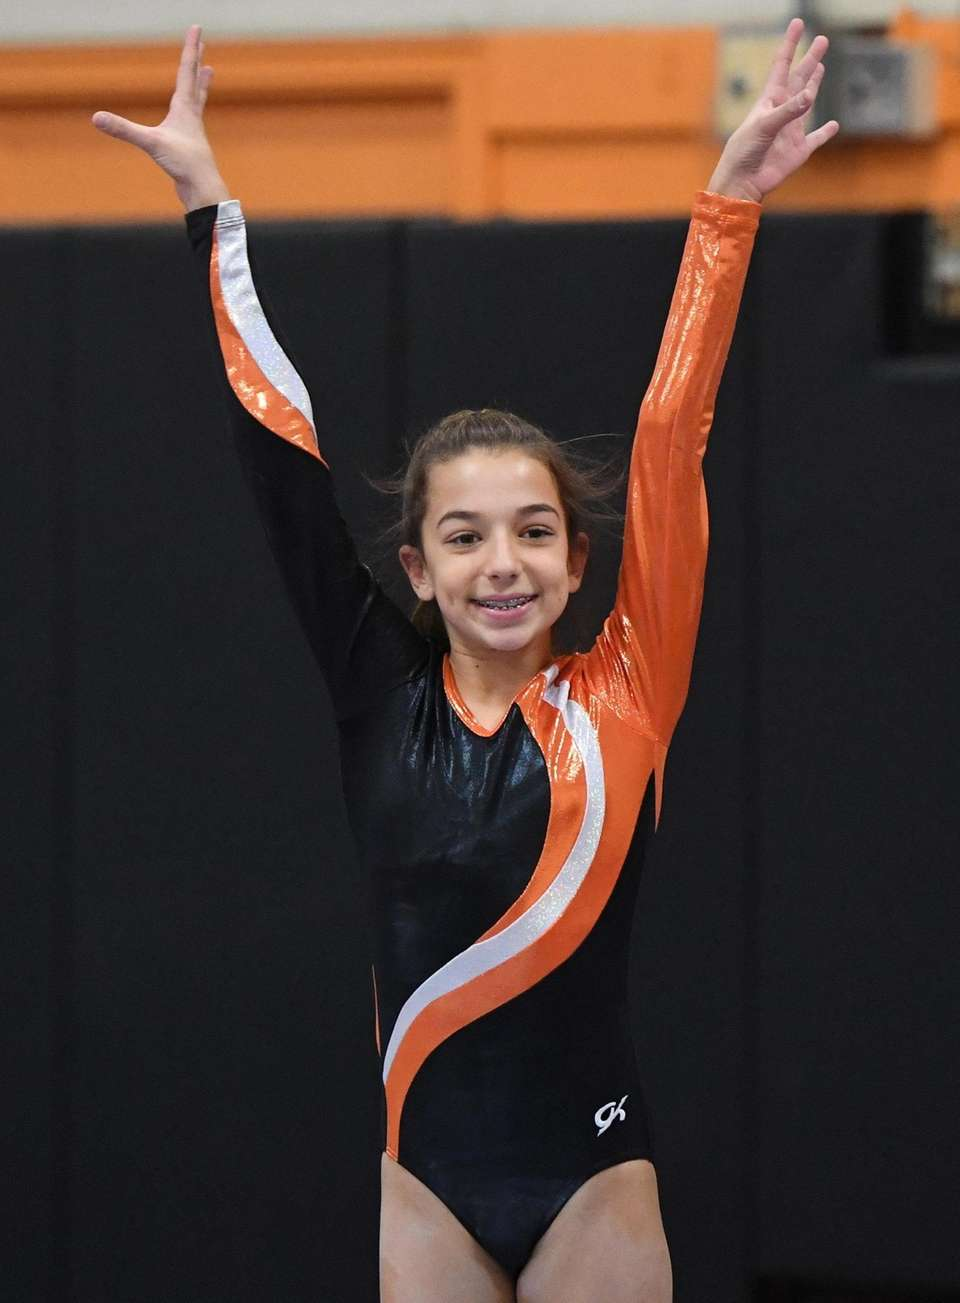 Hicksville's Carly Seiden competes on the balance beam